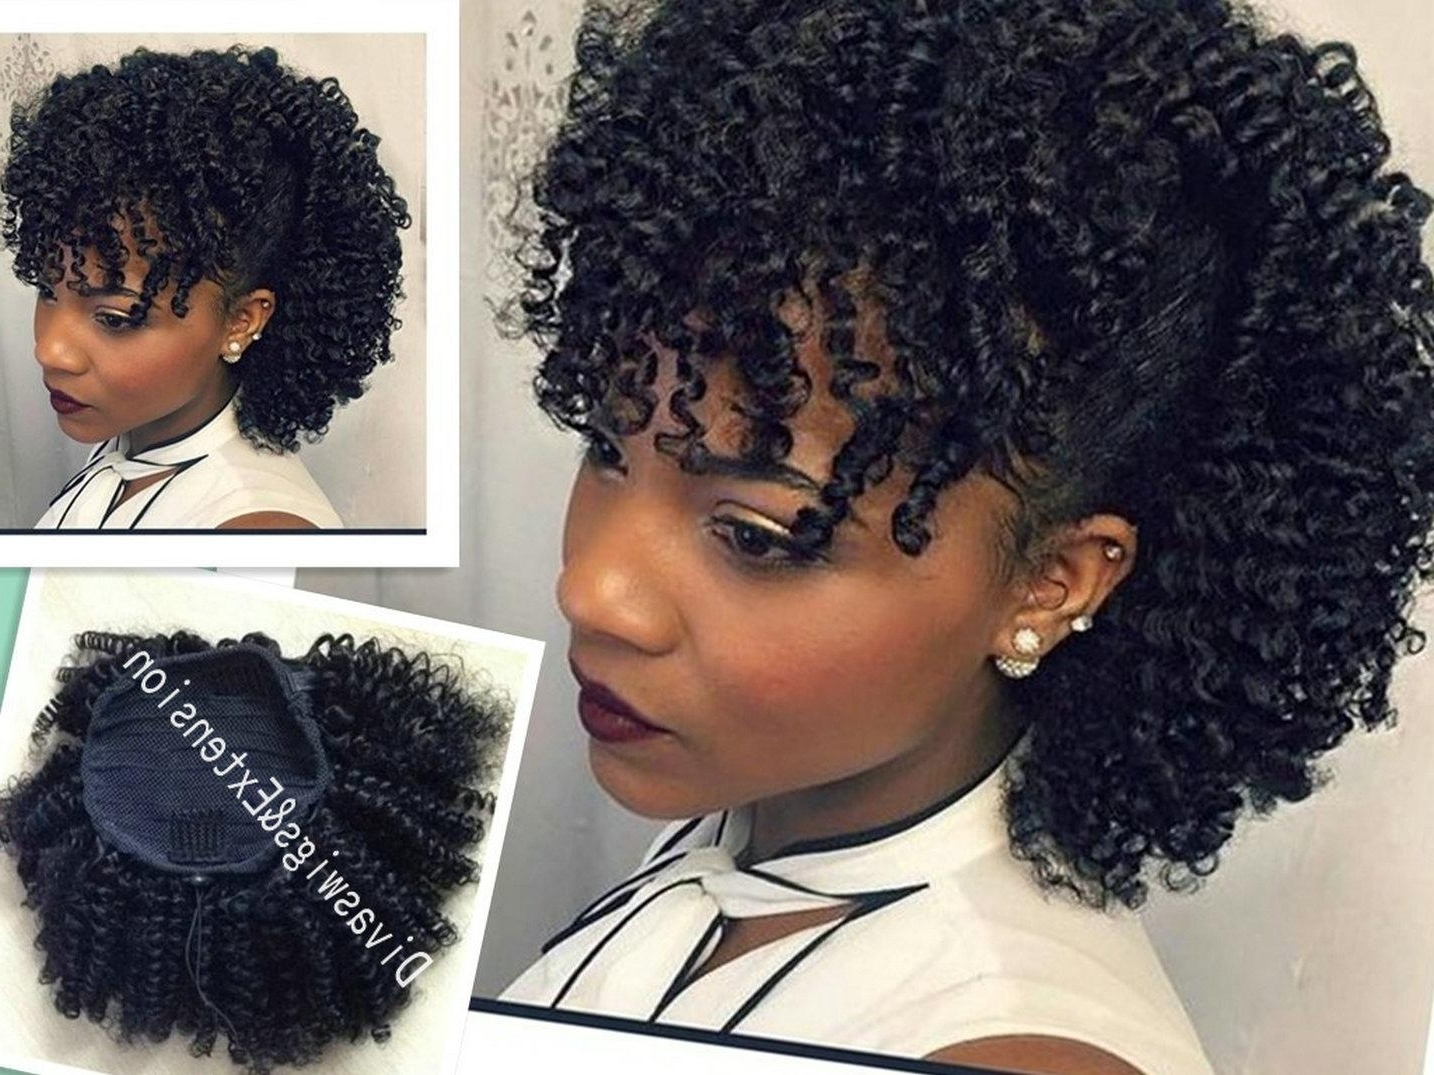 Widely Used Highlighted Afro Curls Ponytail Hairstyles With African American Afro Ponytail Extension Human Hair Ponytails Afro (View 20 of 20)